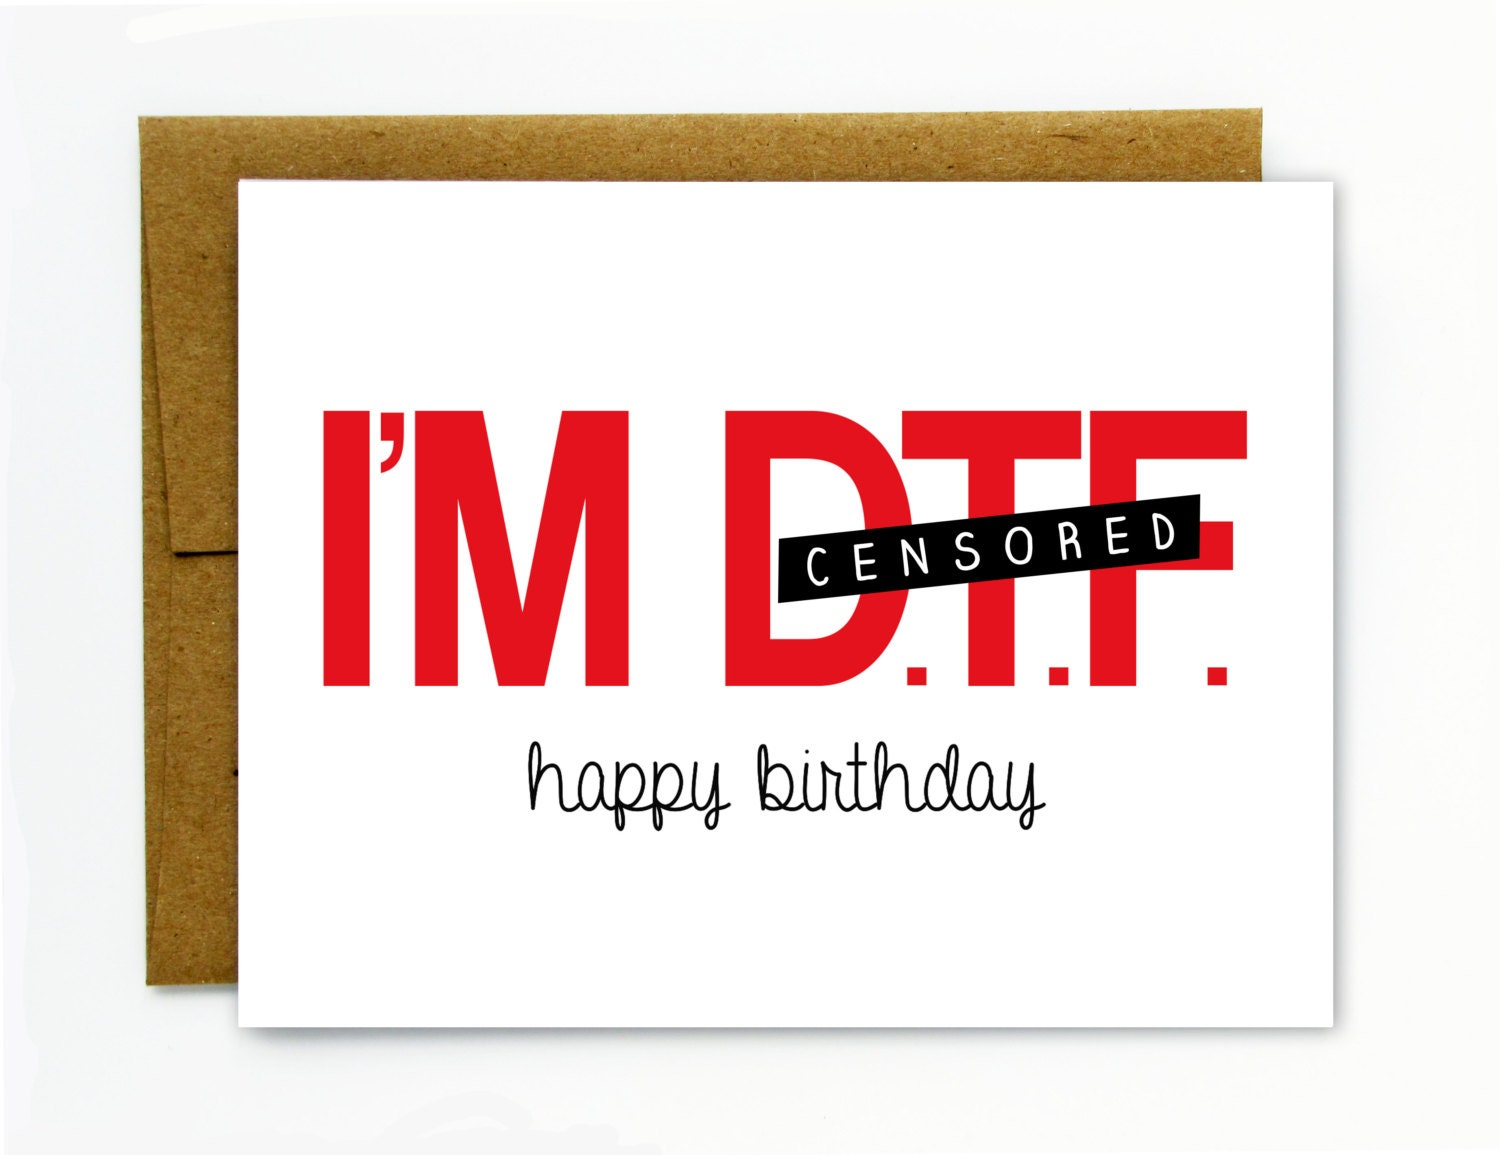 naughty birthday  etsy, Birthday card